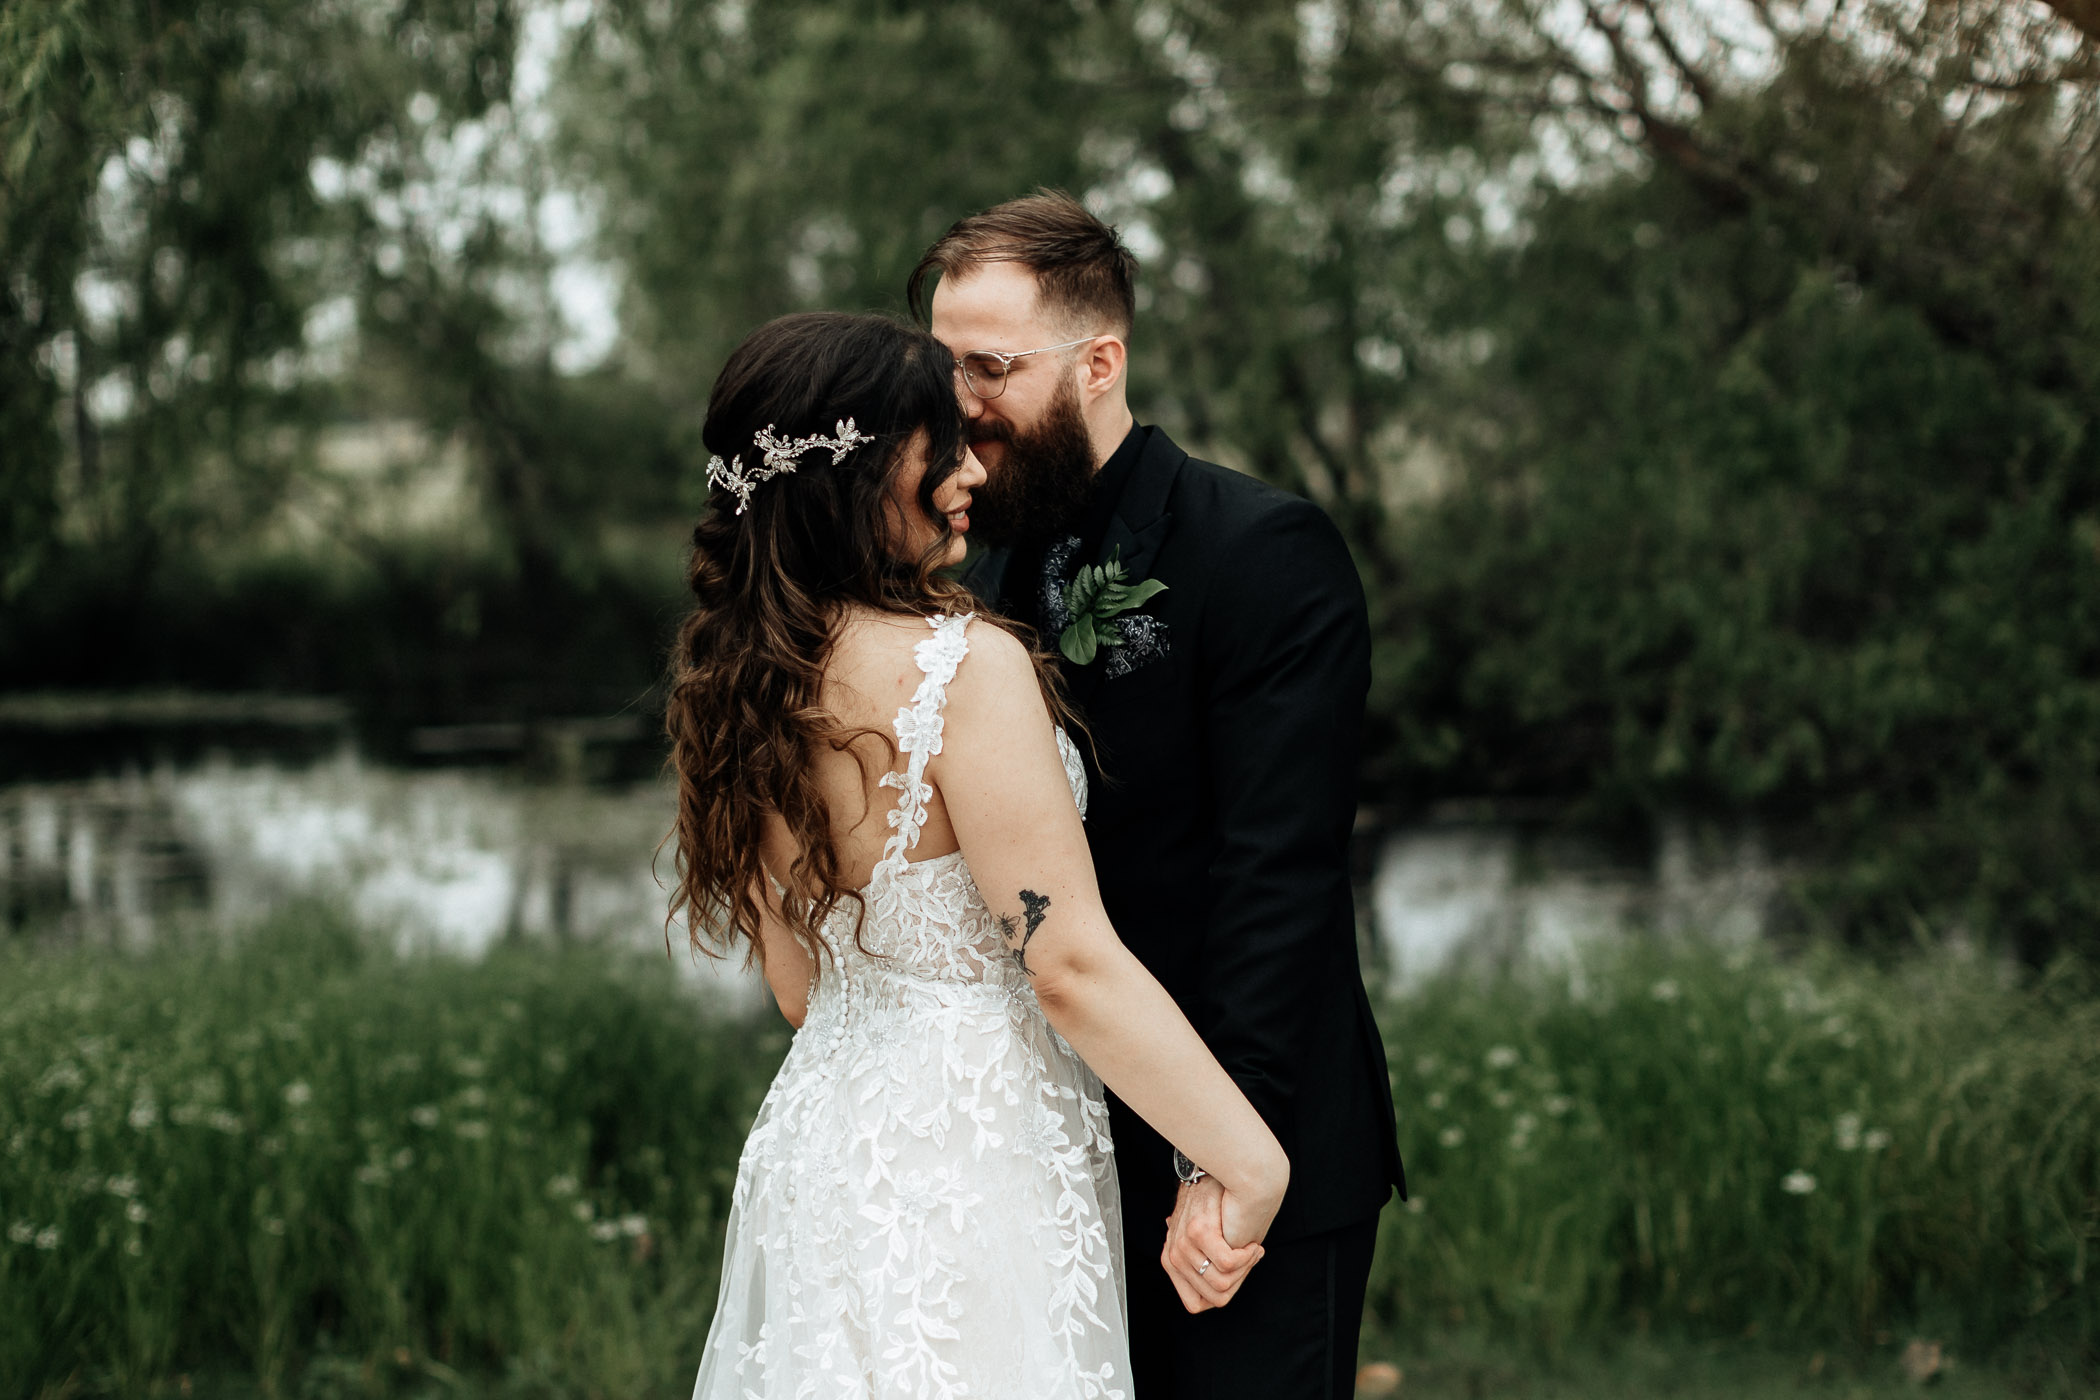 Bride and groom taking photos in front of a lake in DFW